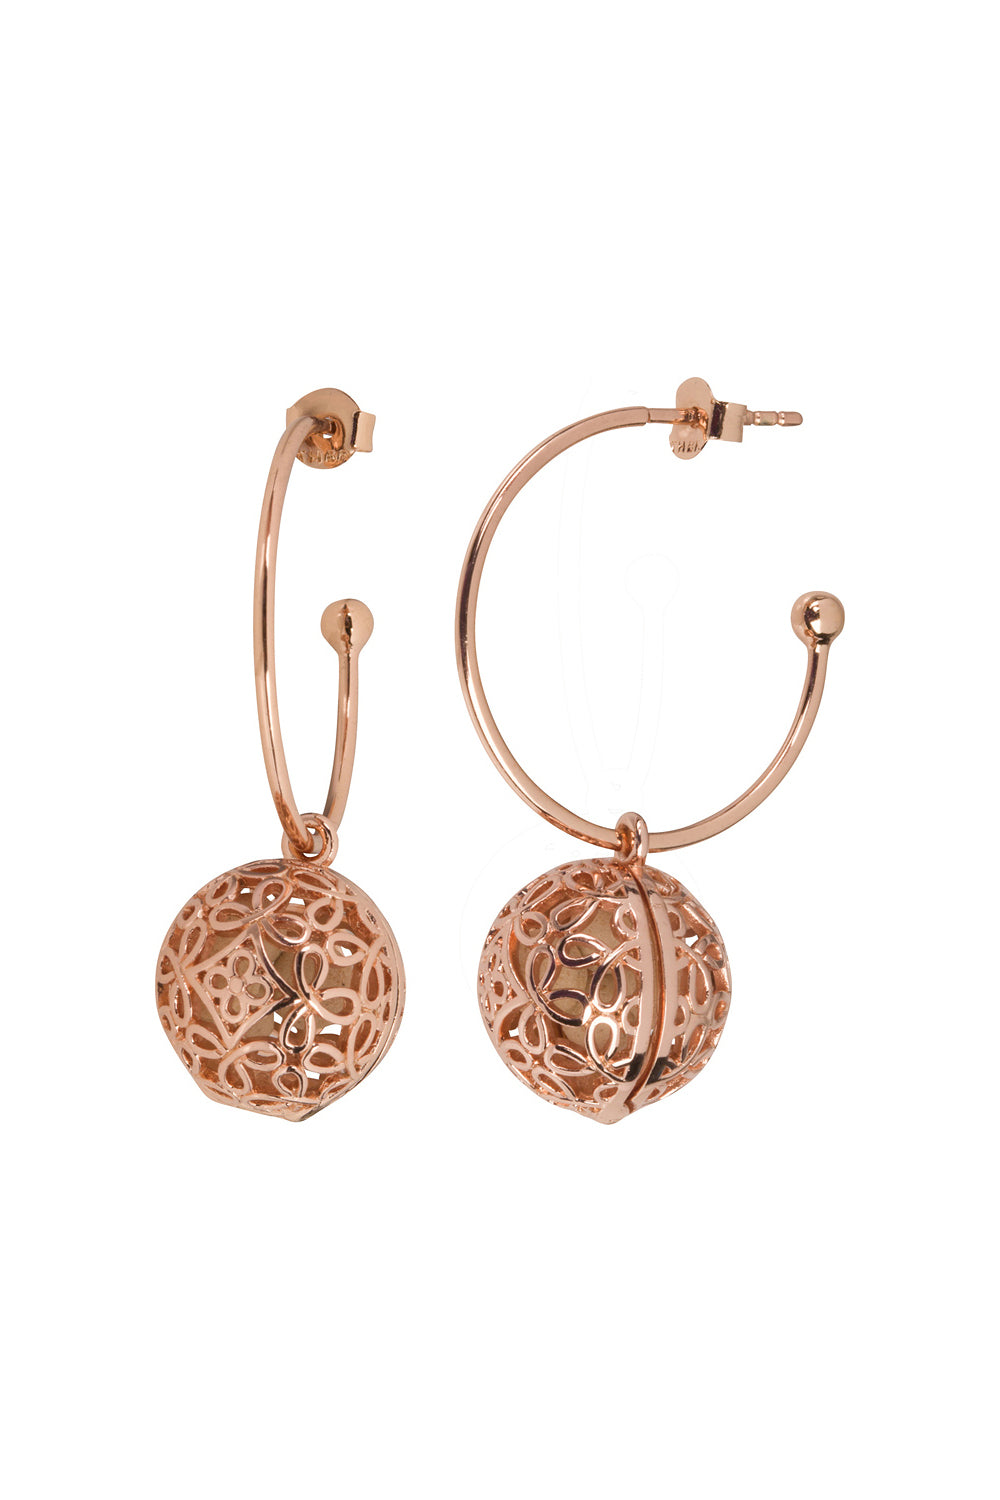 Boho Hoop Fragrance Earrings with Rose Gold Tone Charm